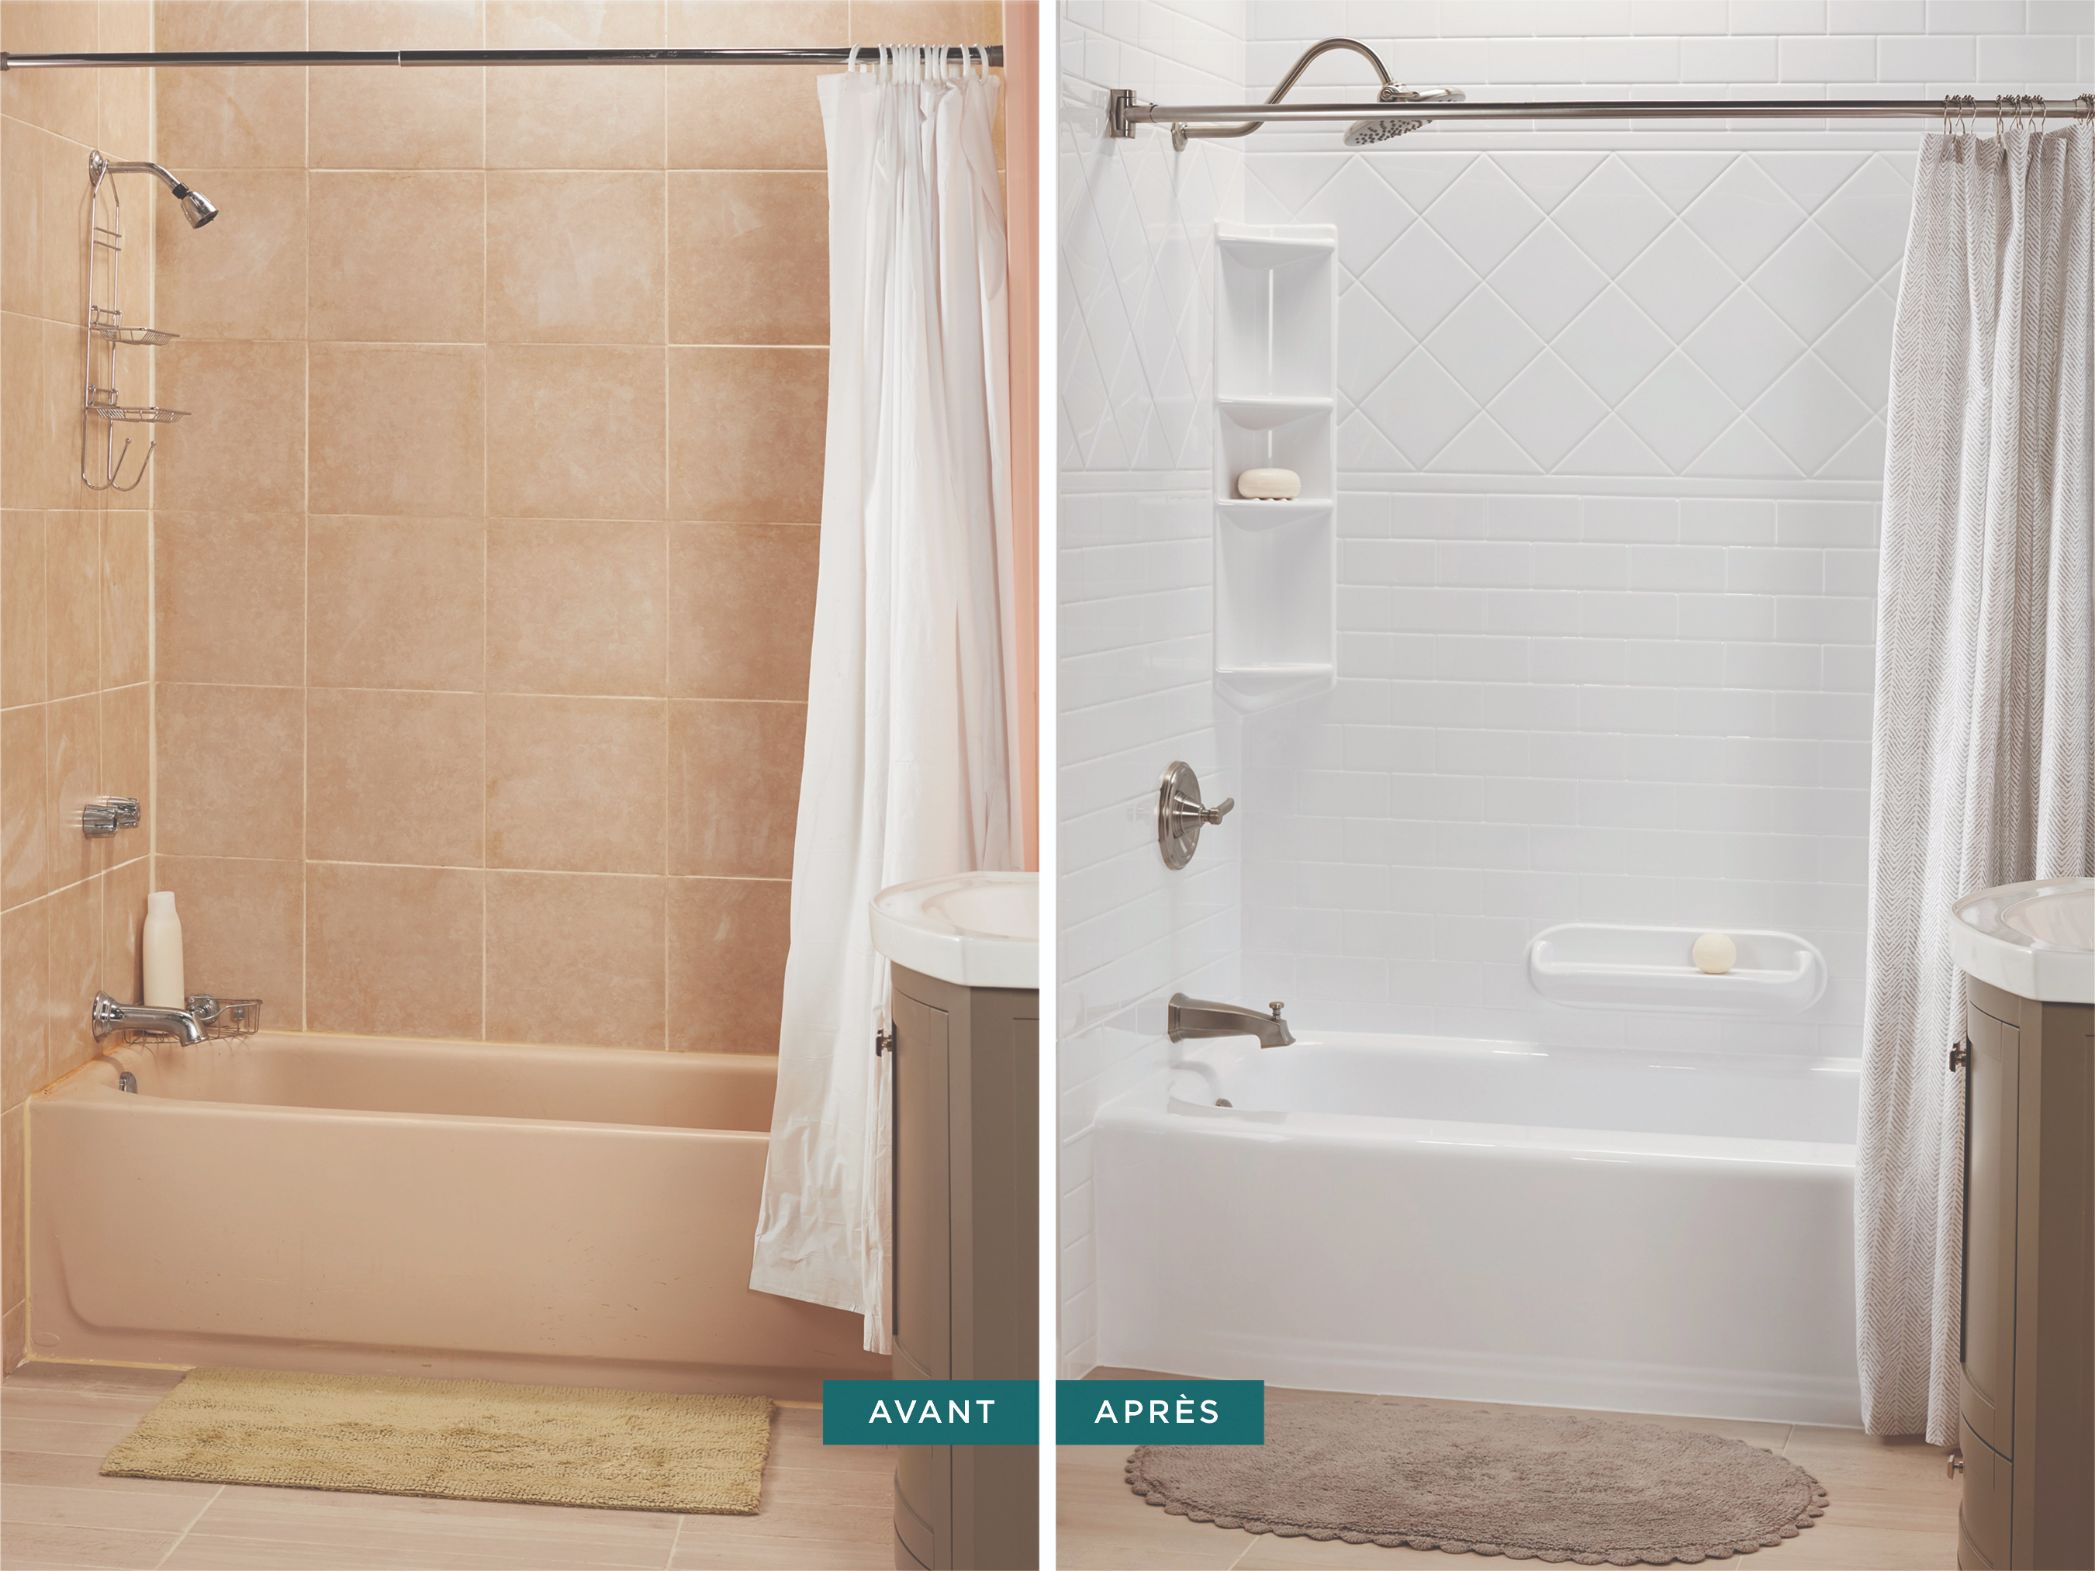 Before and after bathtub and faucet